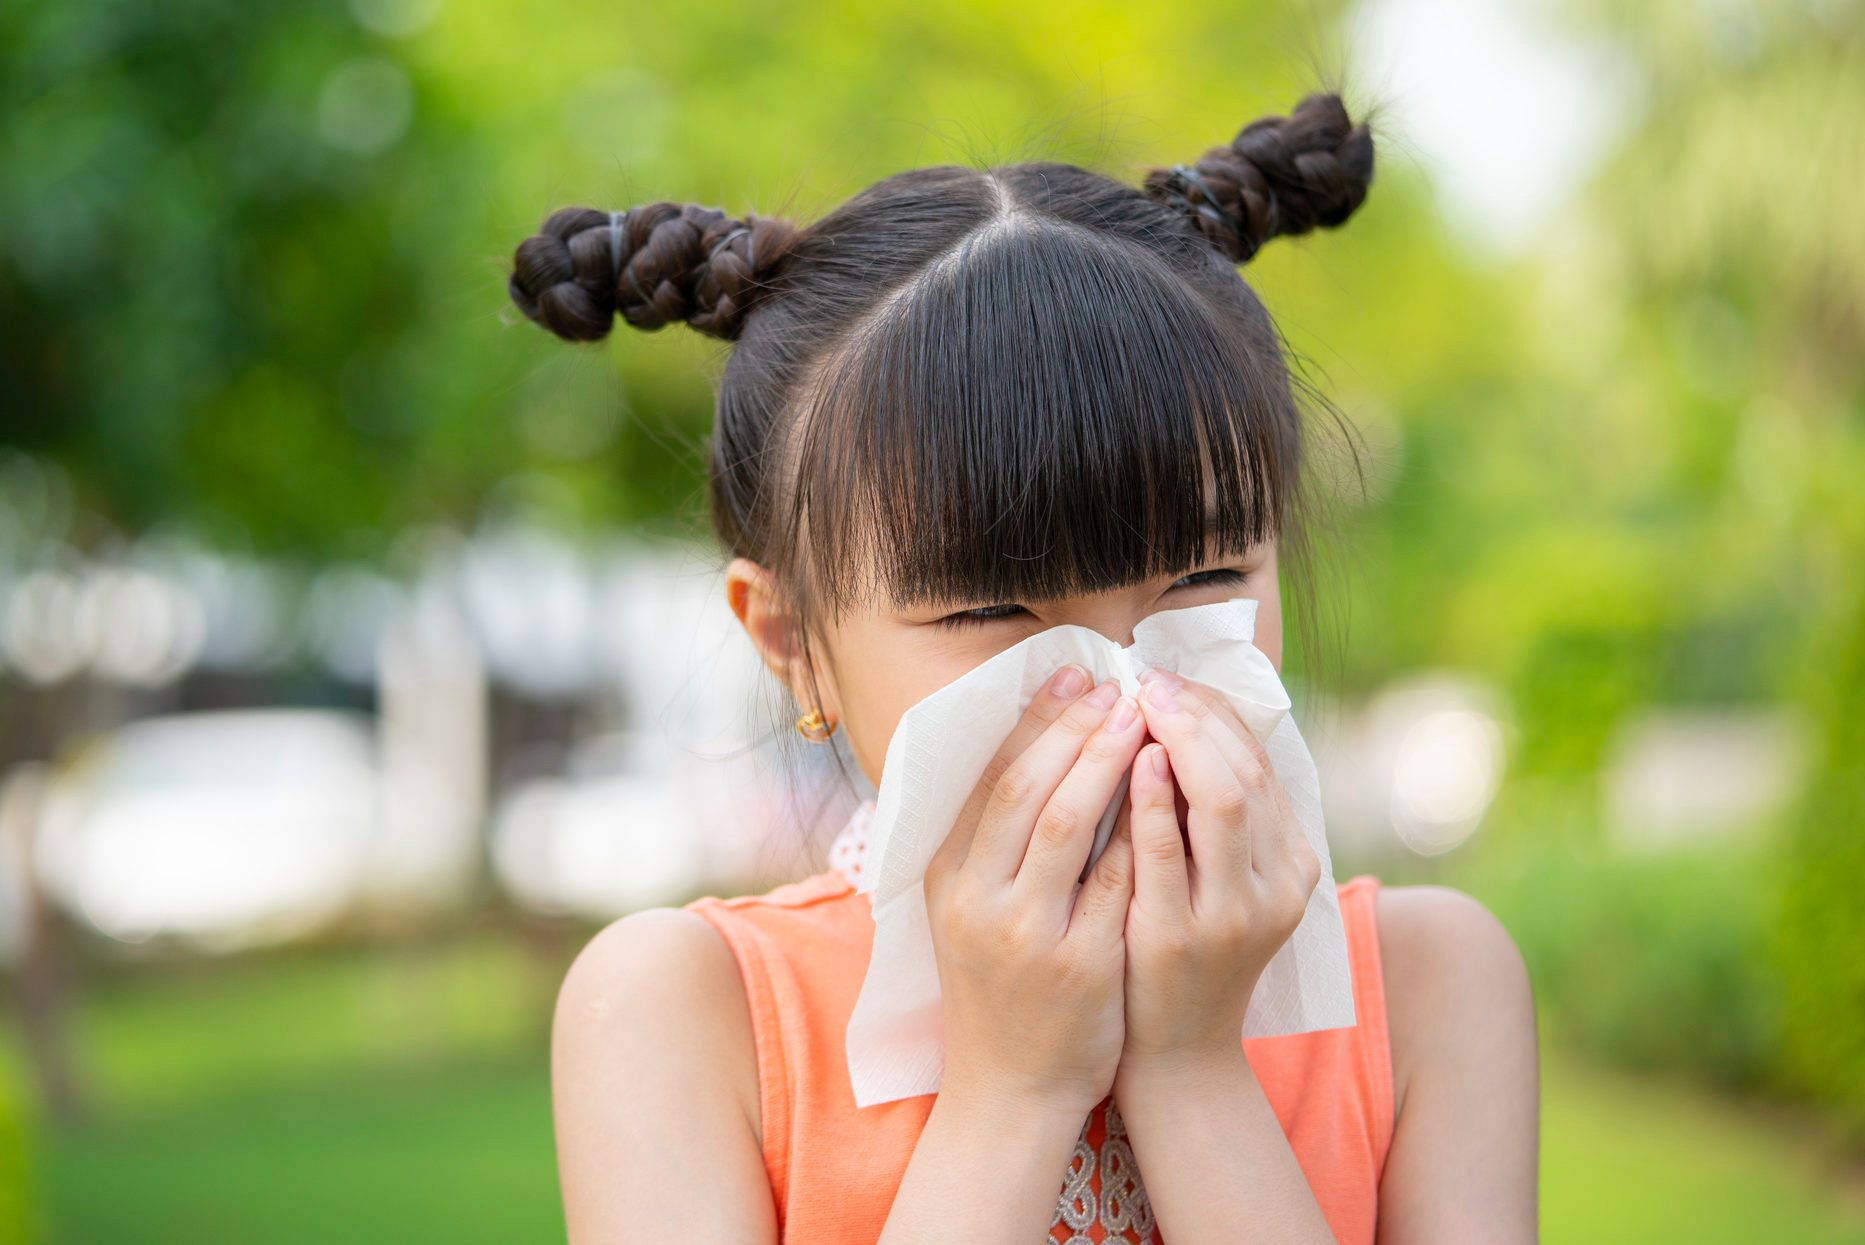 Small girl blowing her nose into a napkin